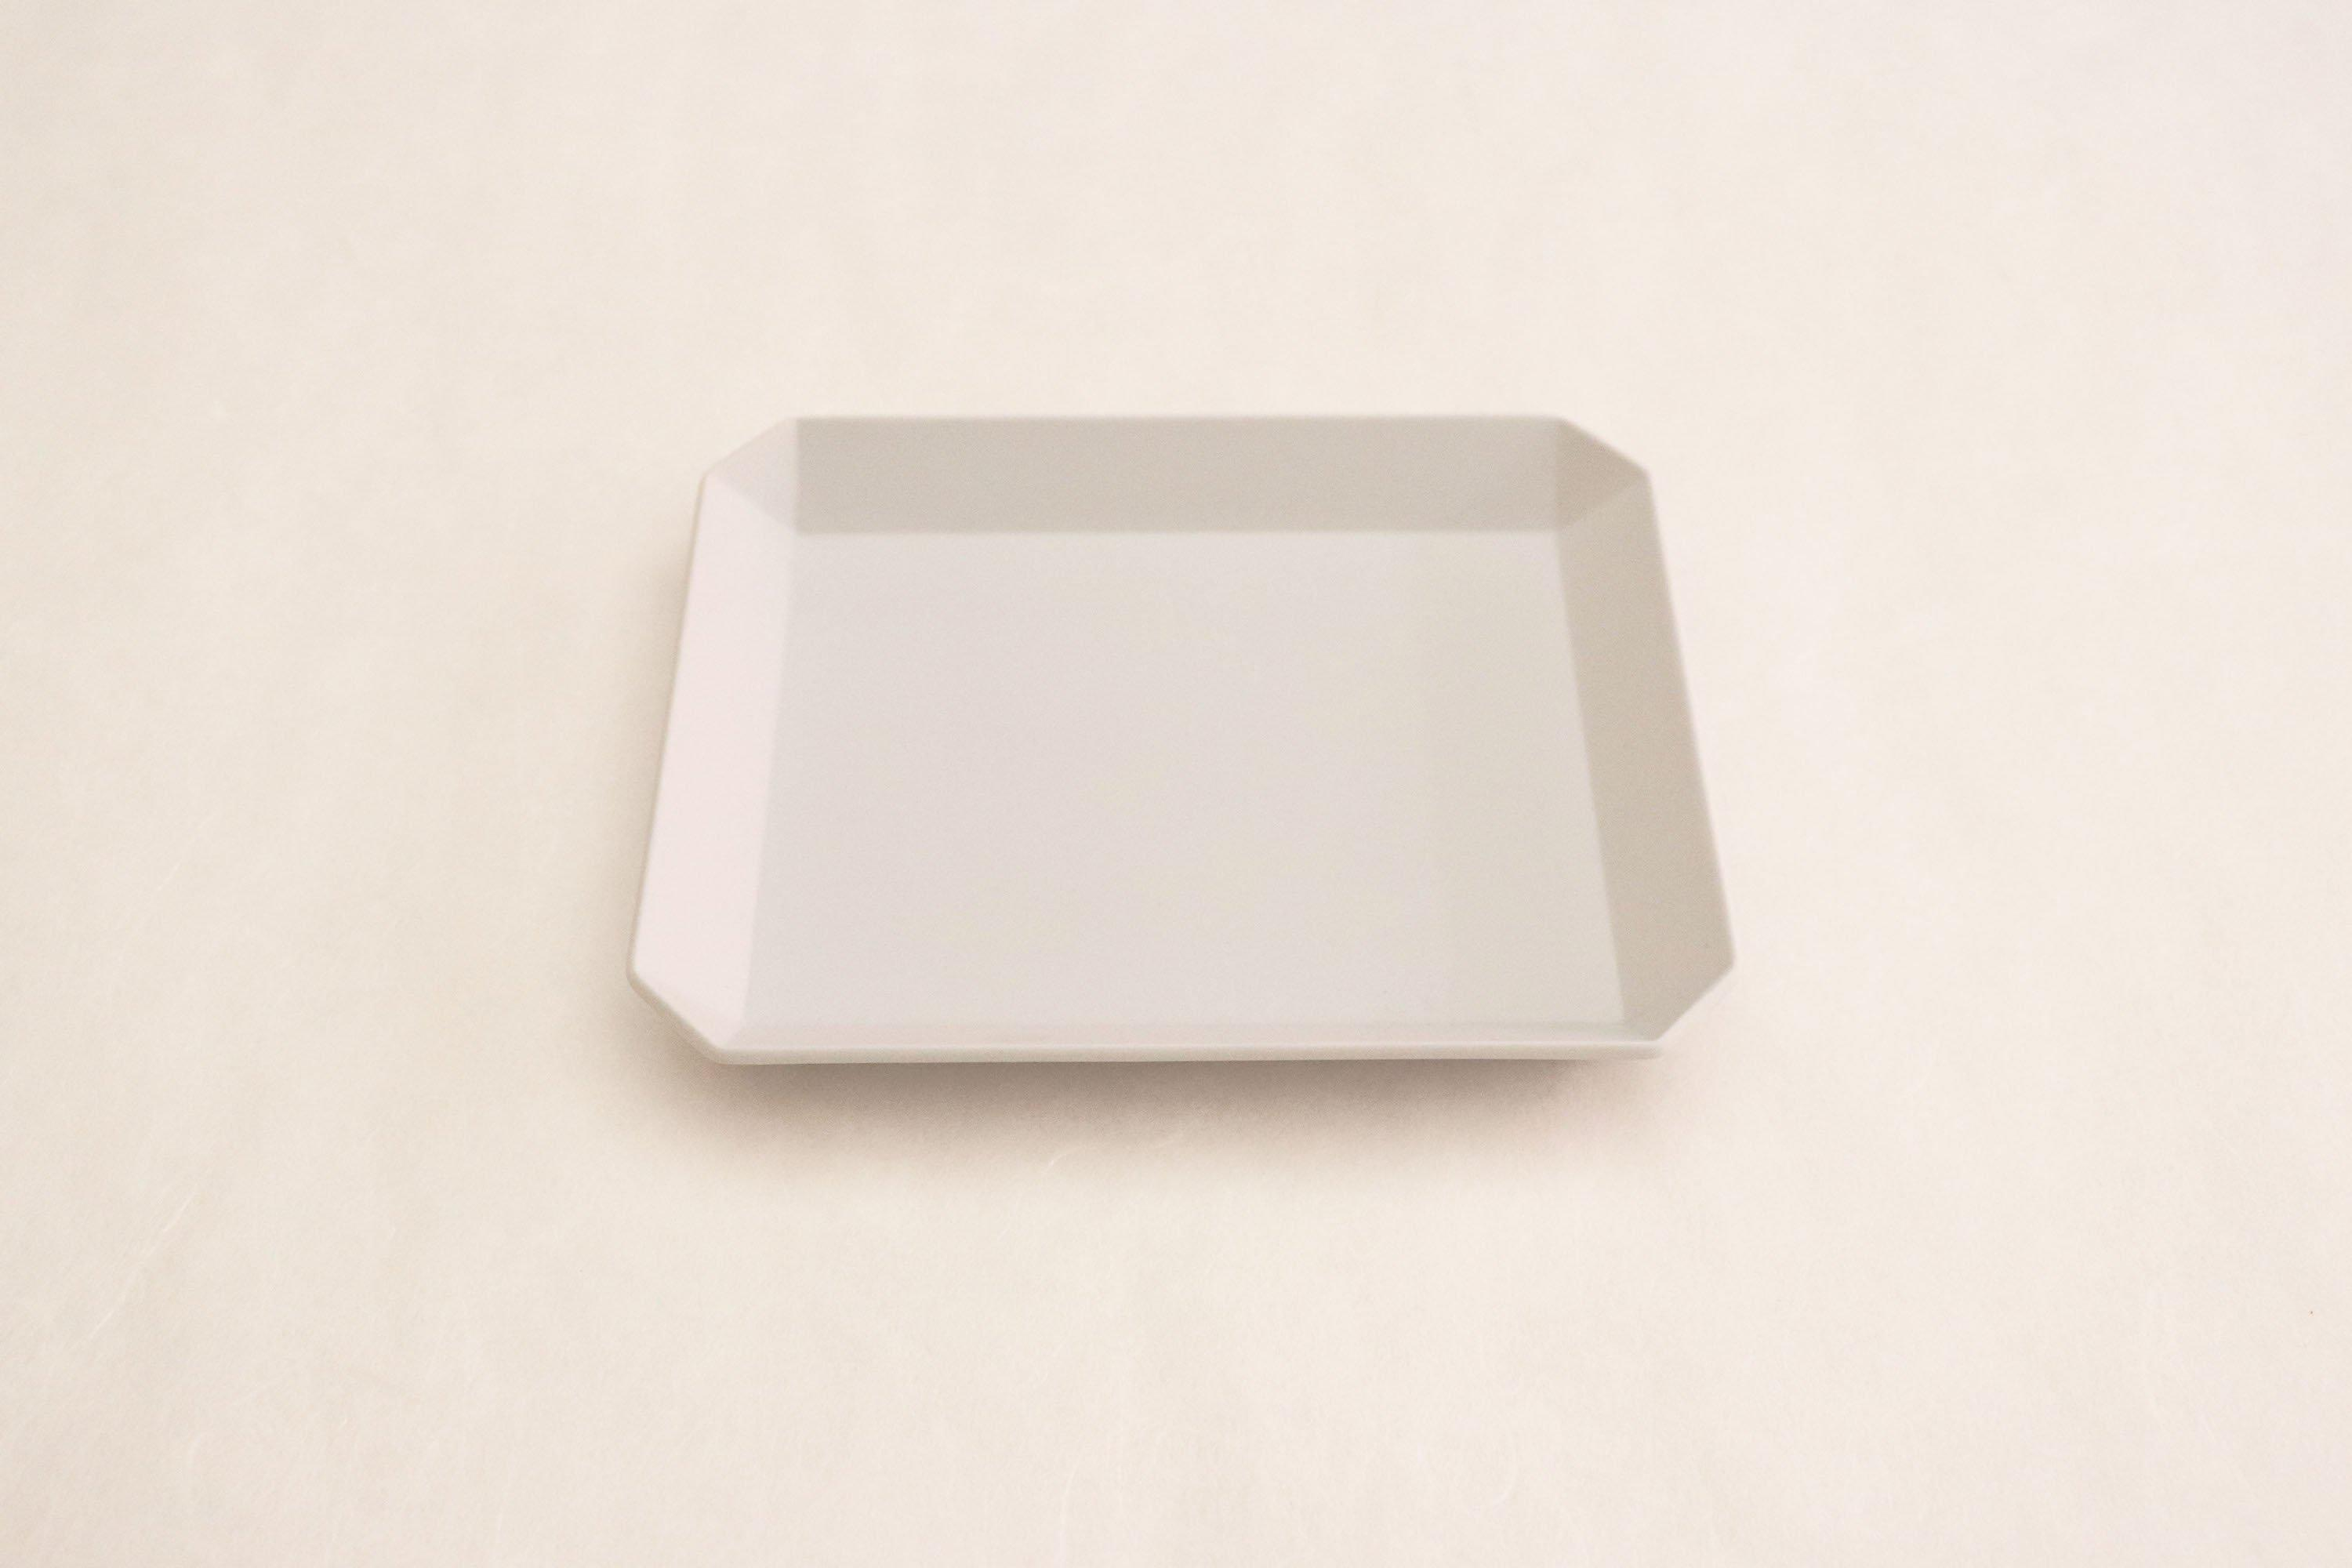 "TY""Standard"" Square Plate plane Gray 130"